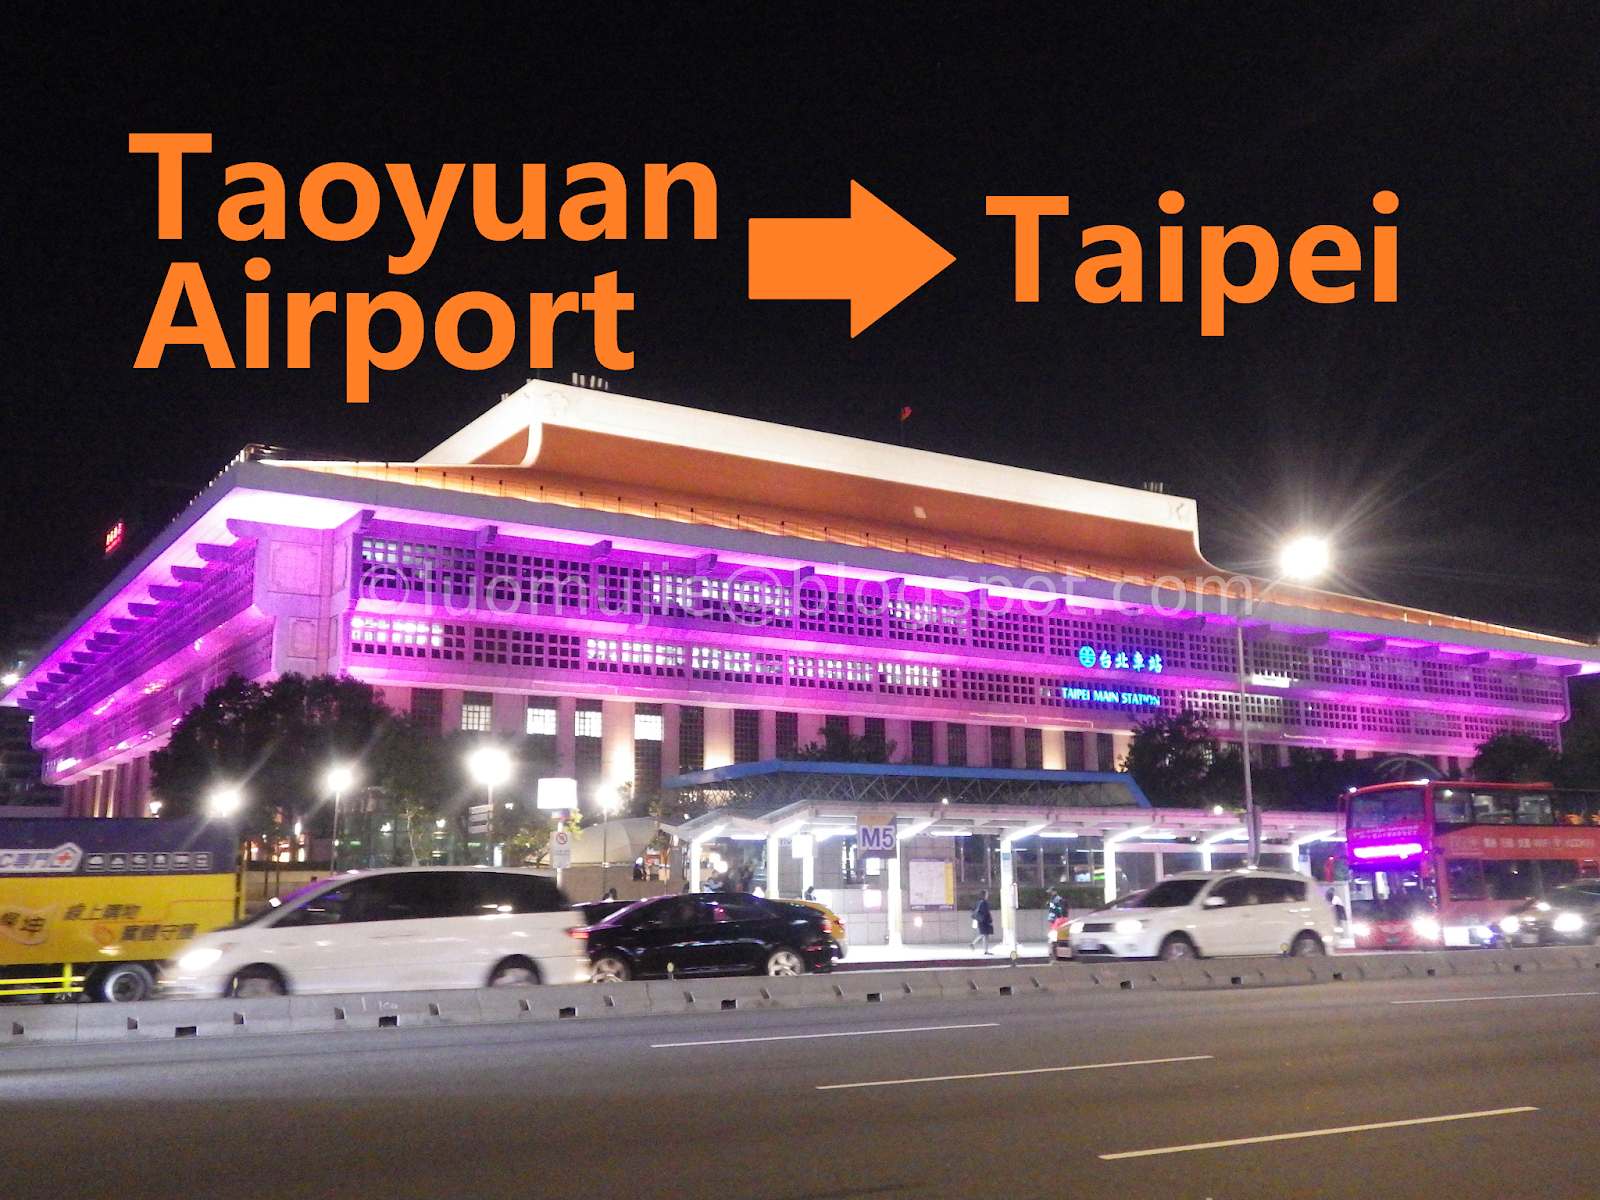 Taoyuan Airport to Taipei